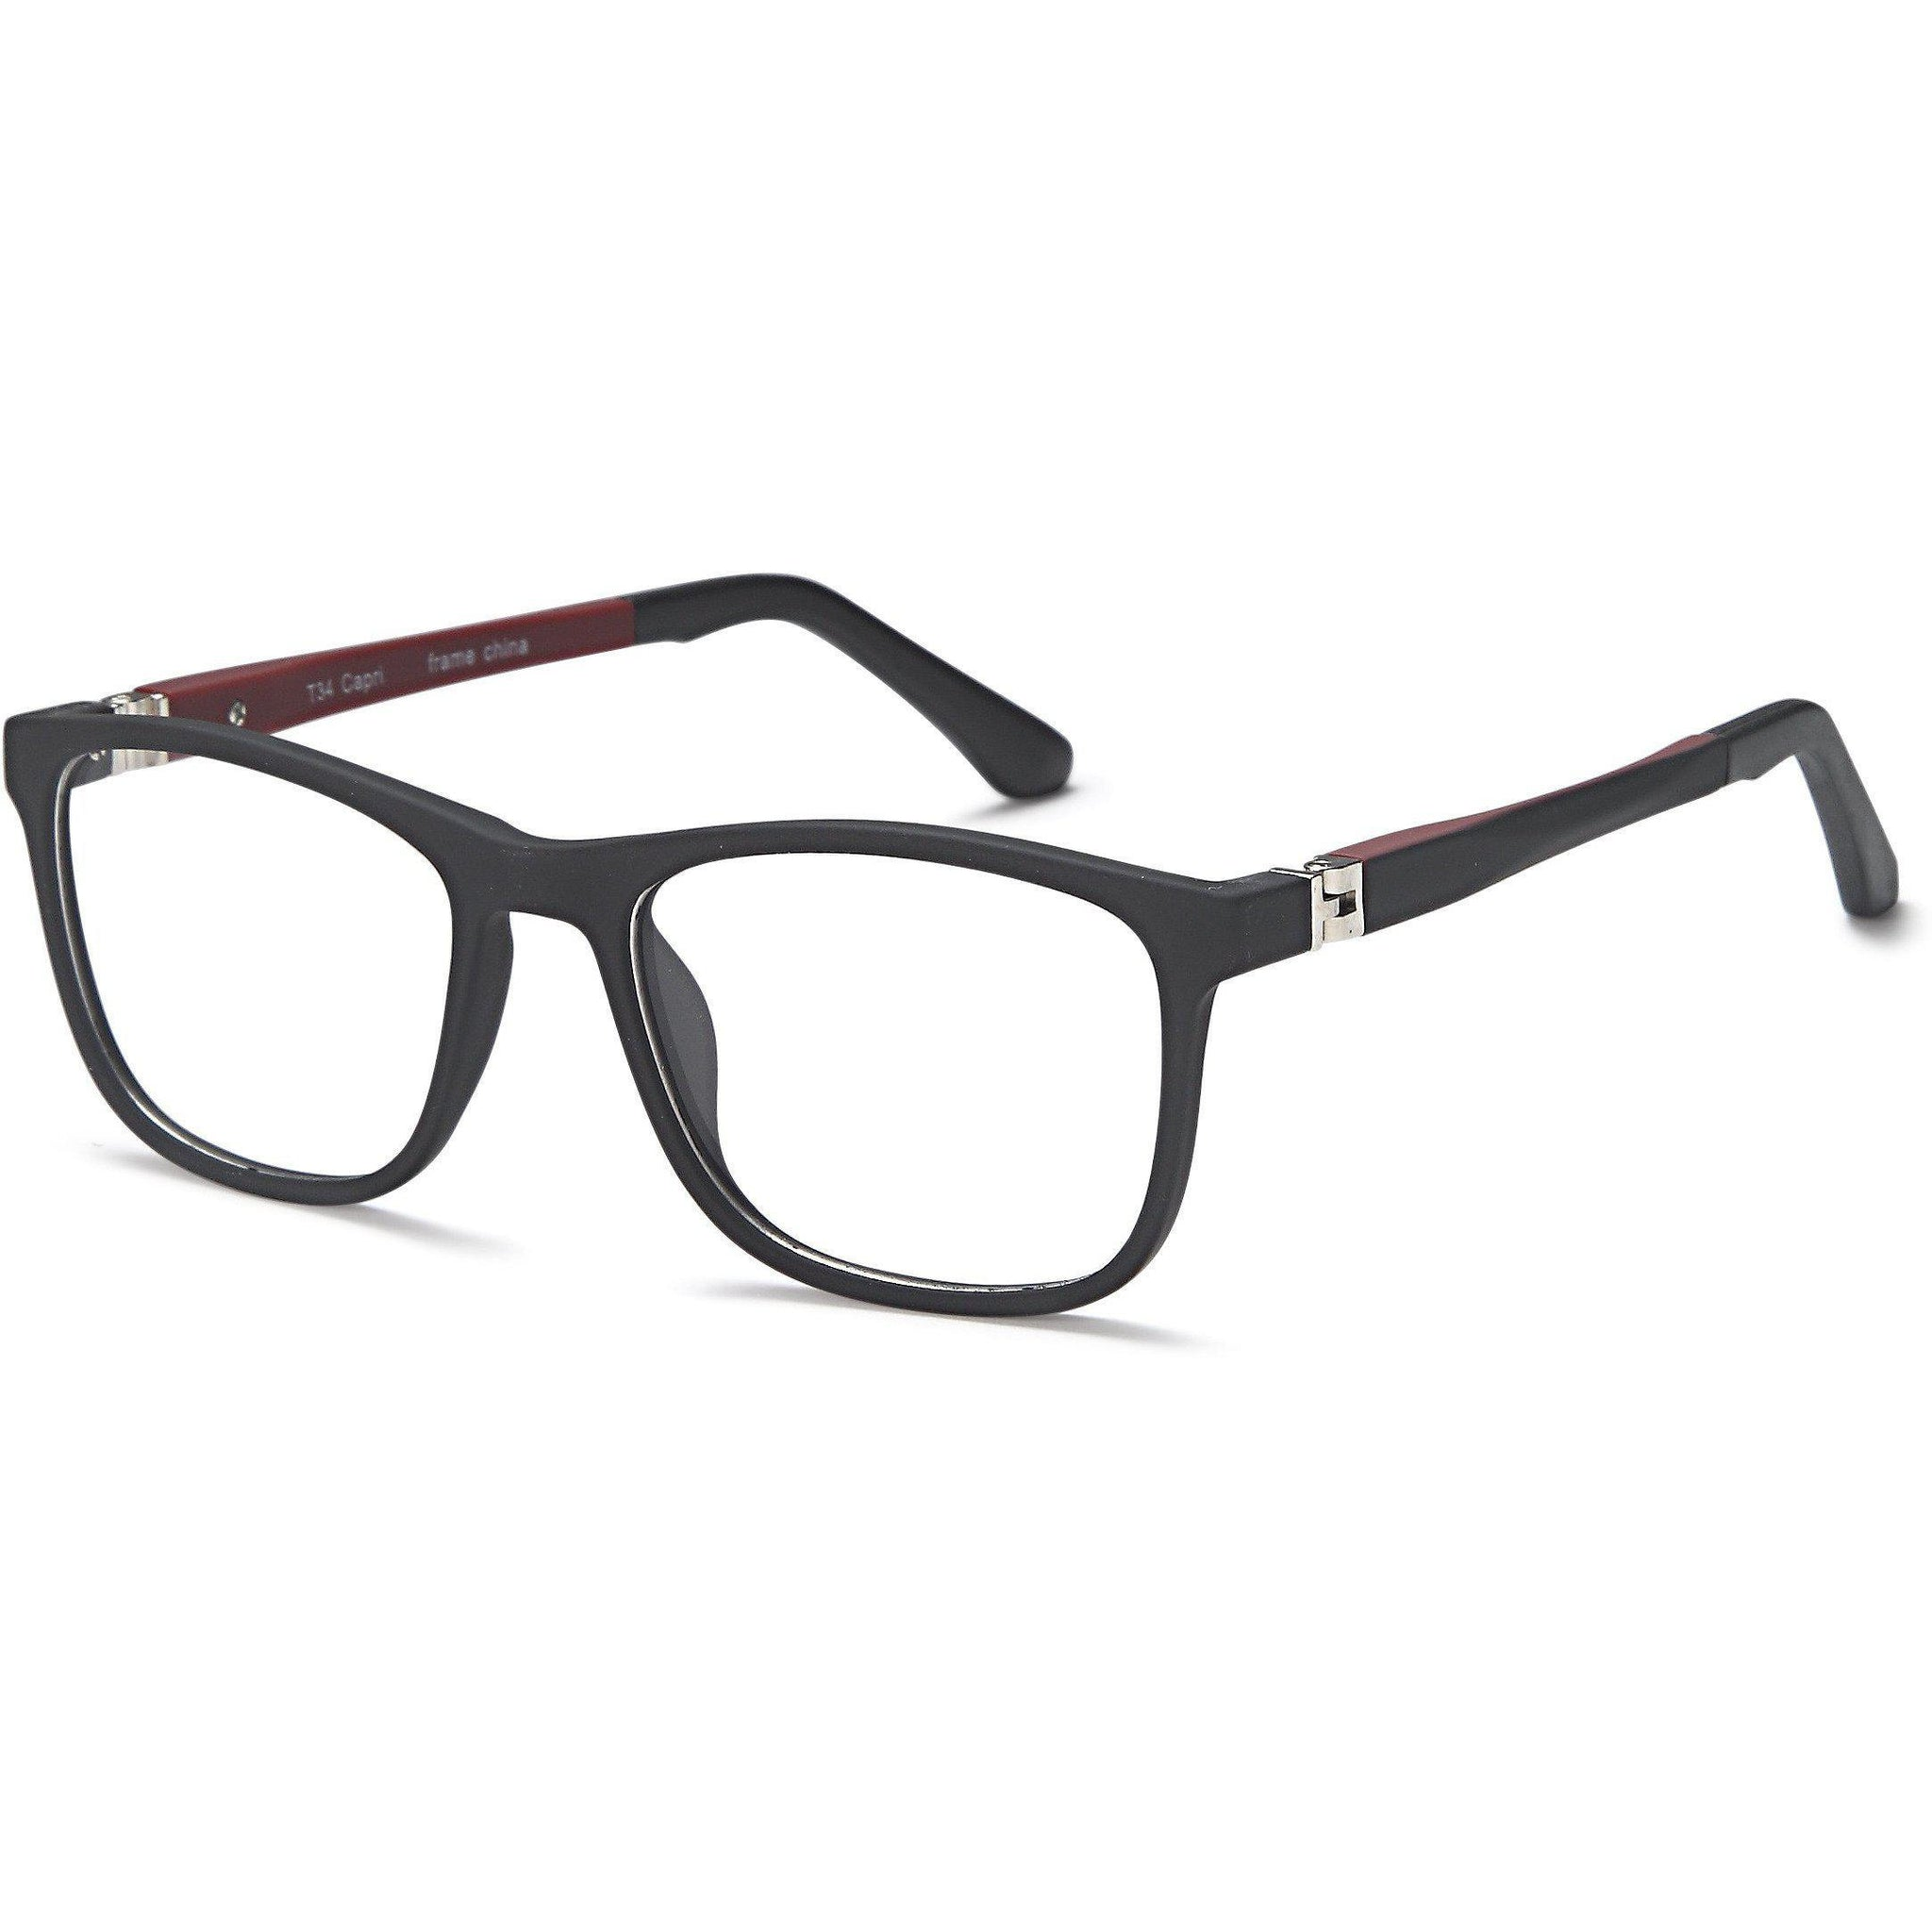 OnTrend Prescription Glasses T 33 Eyeglasses Frames